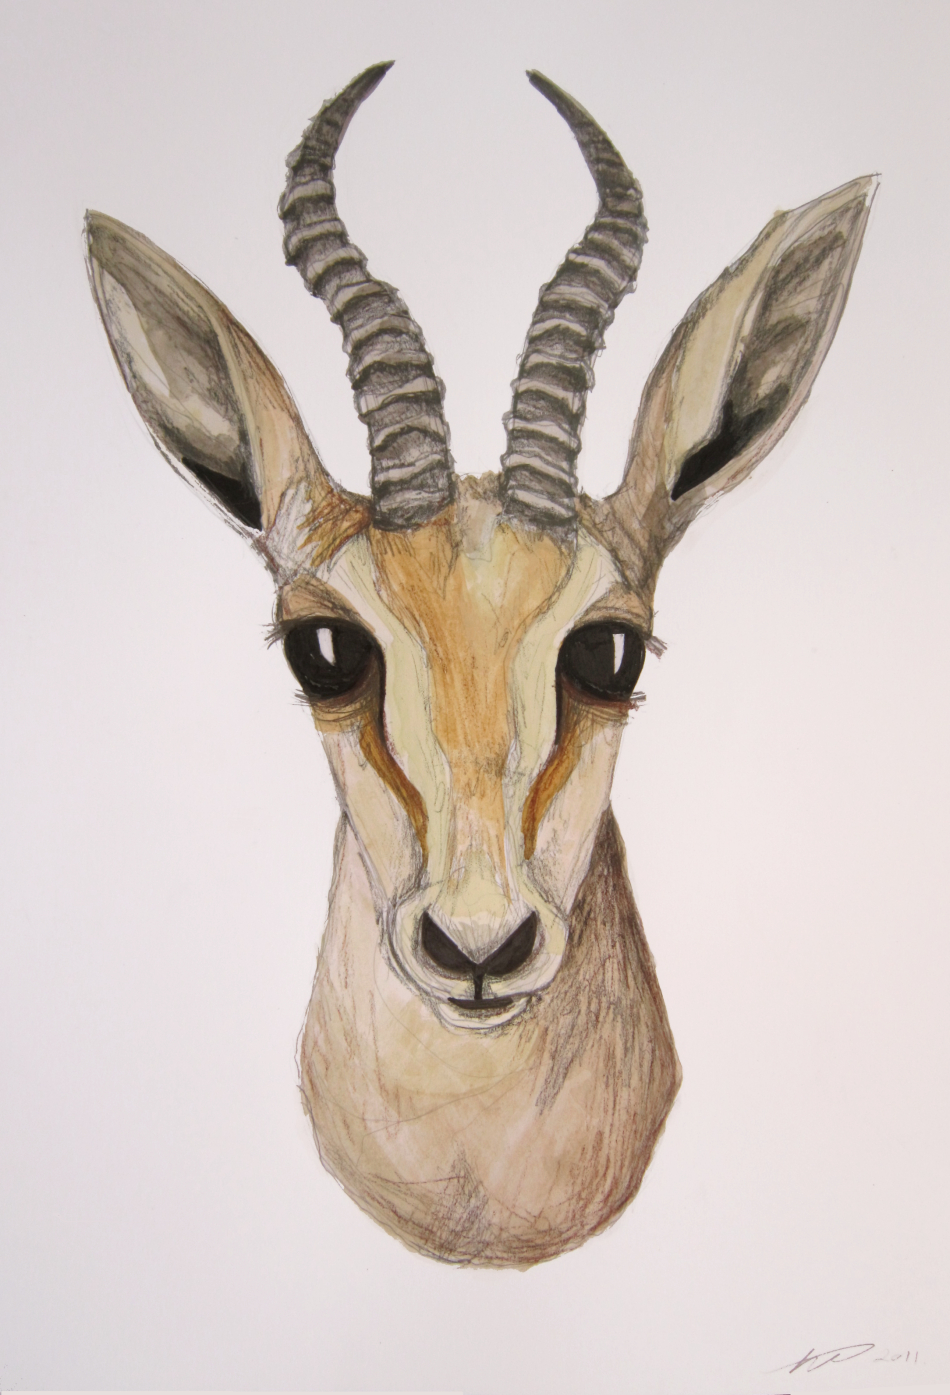 Gazelle head drawing - photo#1